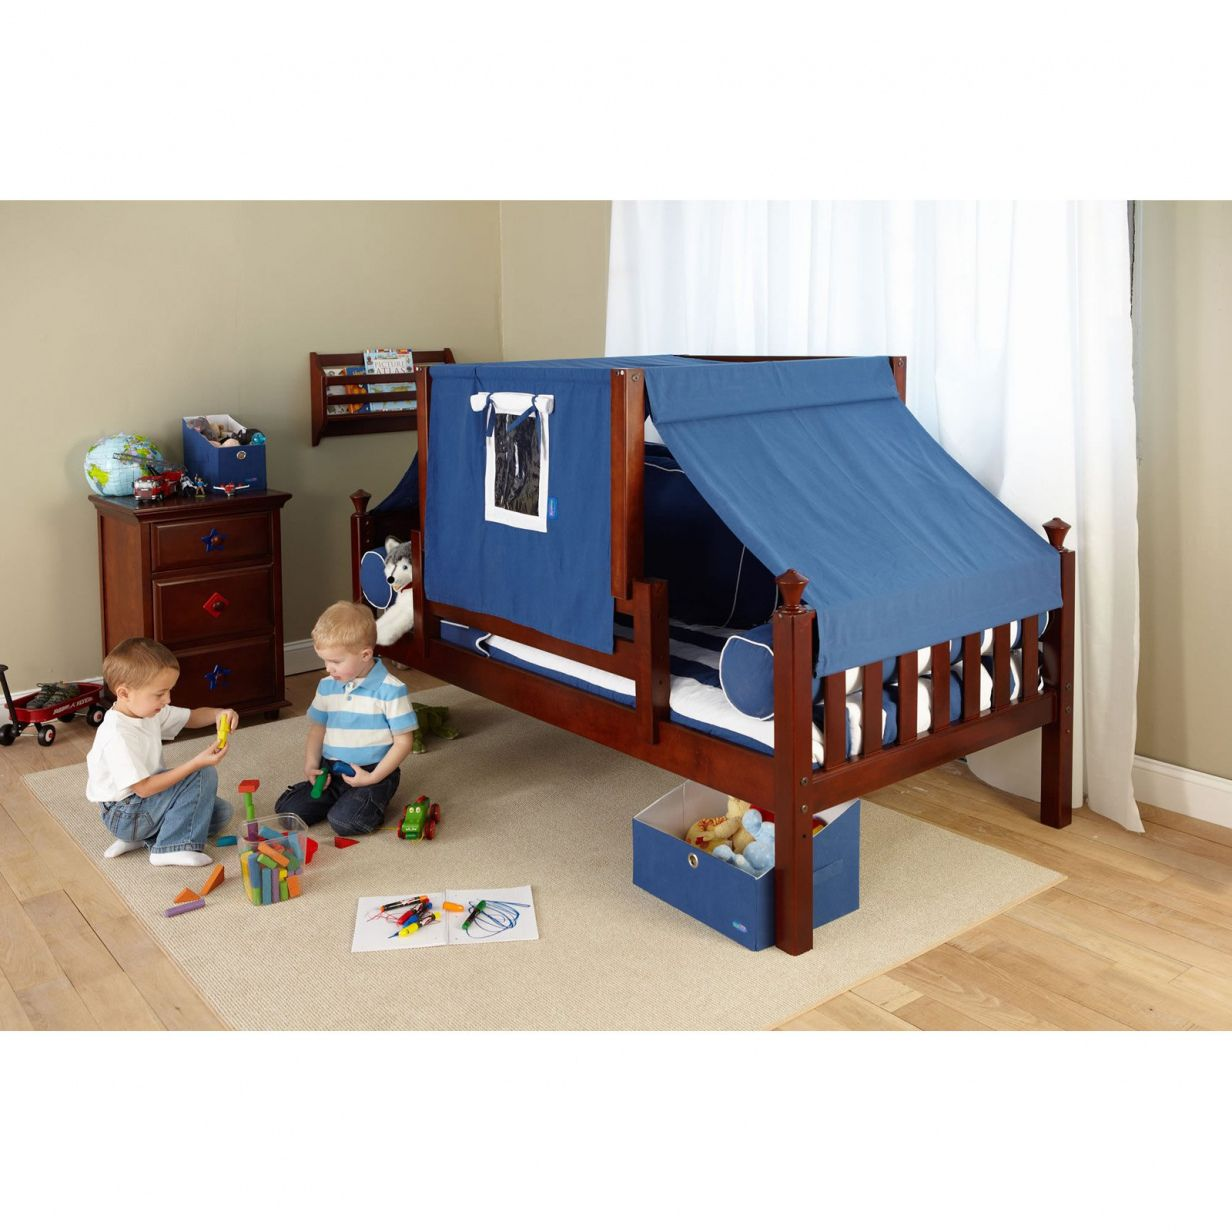 Best Of Daybed For Boy Check More At Http Dust War Com Daybed